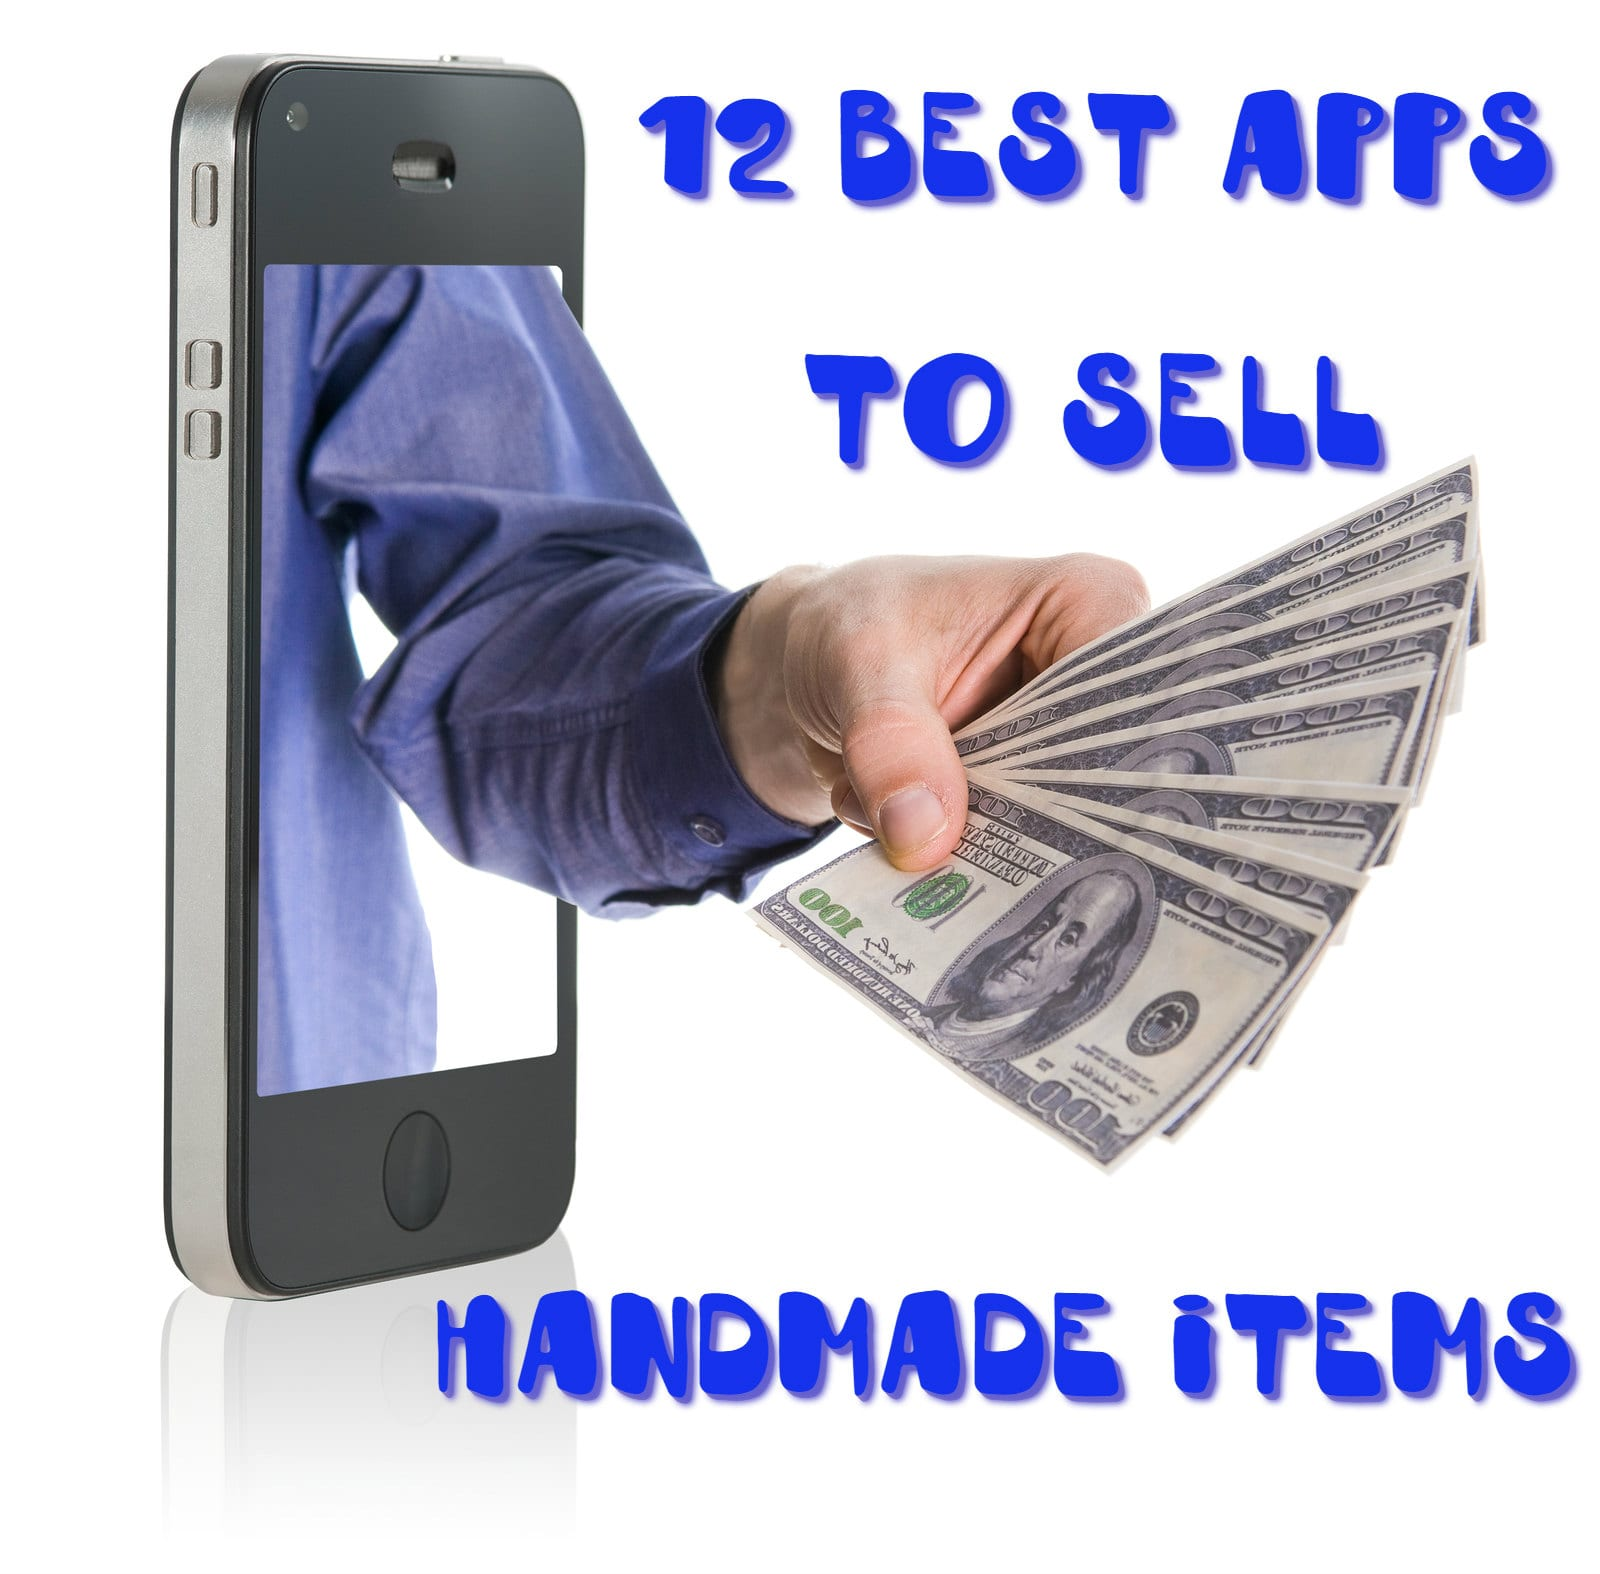 12 best apps to sell handmade items on android ios for Sell handmade crafts online free